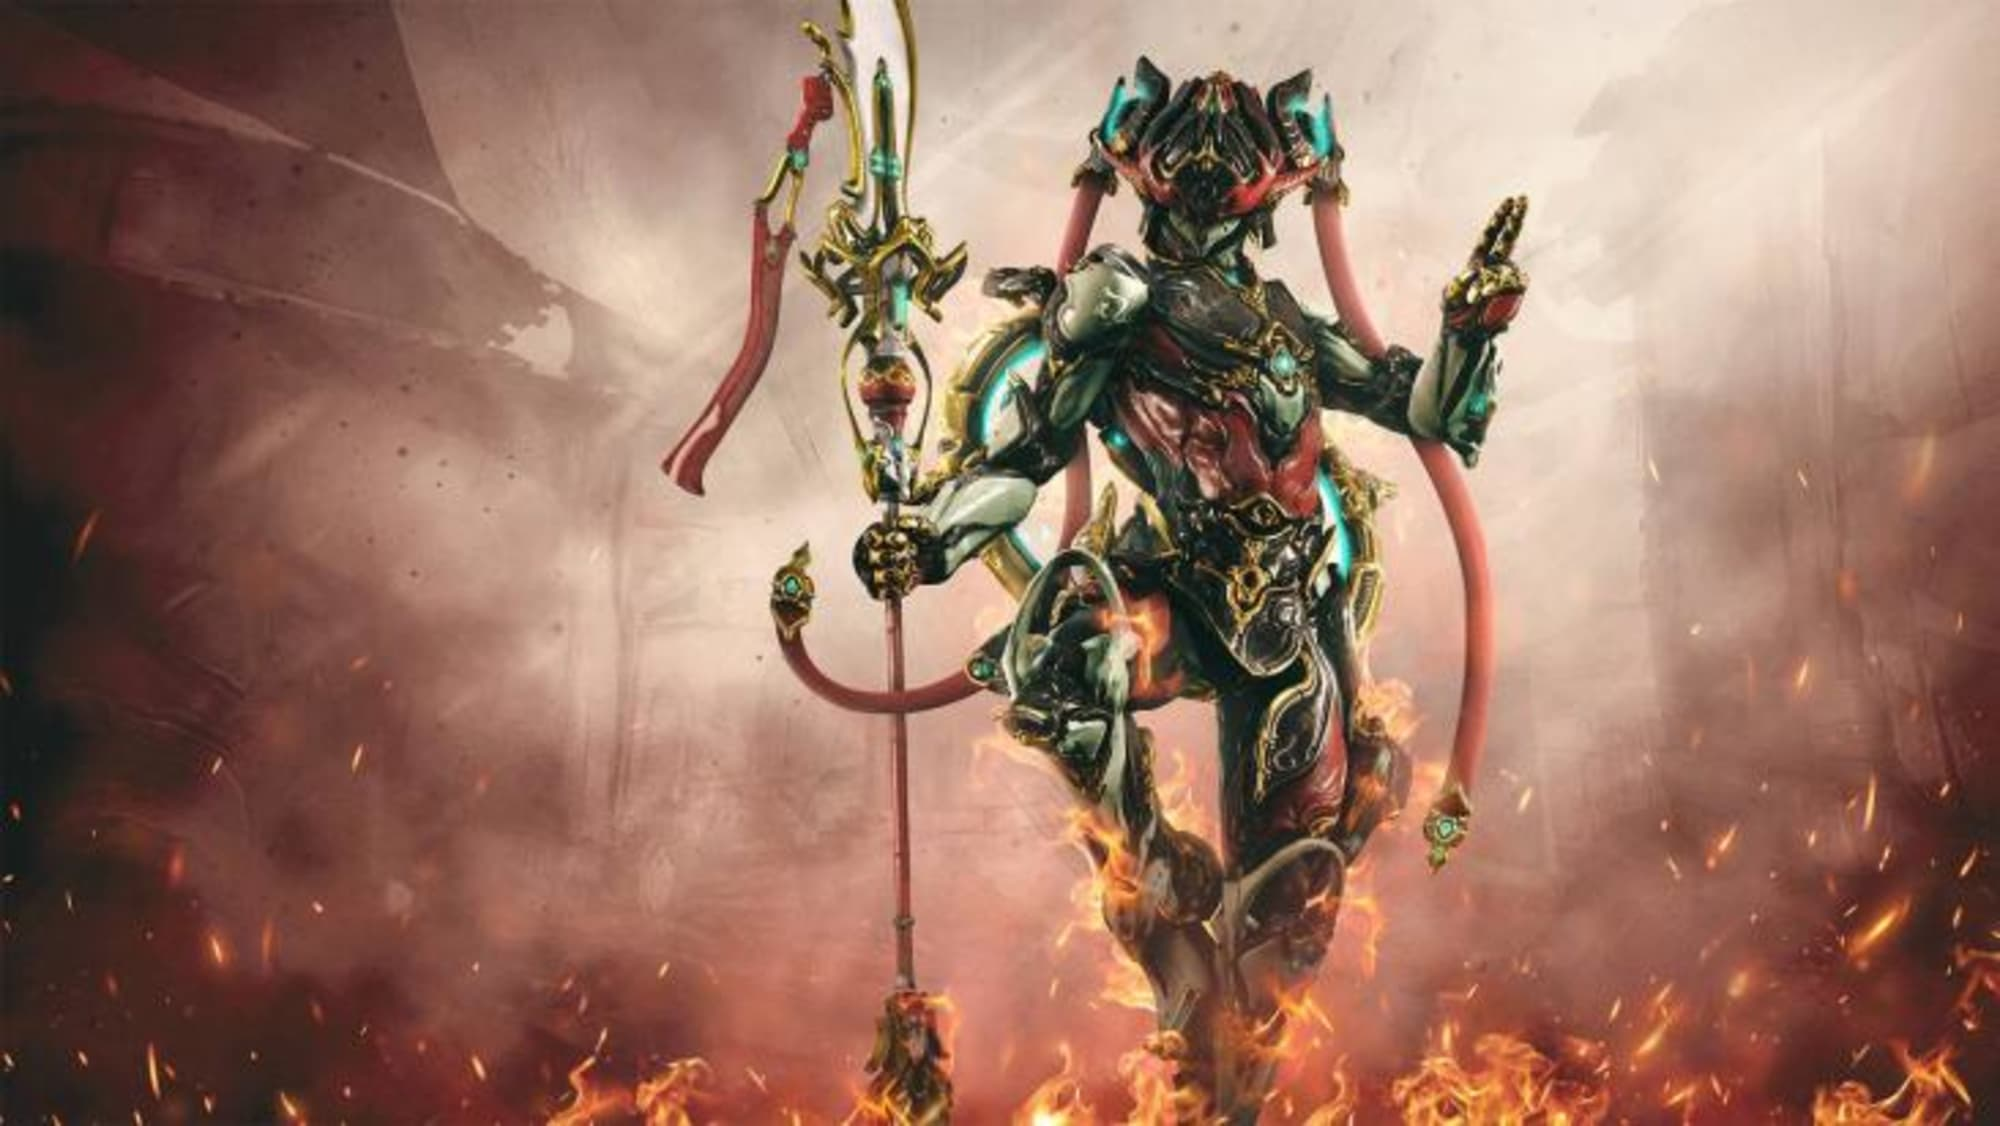 Warframe Guide How To Farm For And Build Nezha Prime 4 tellurium isn't actually that difficult to obtain, i once had 5 drop all in one survival mission at ophelia on uranus (when i wasn't even trying to farm more than 1 for a weapon), so just equip your best grineer. how to farm for and build nezha prime